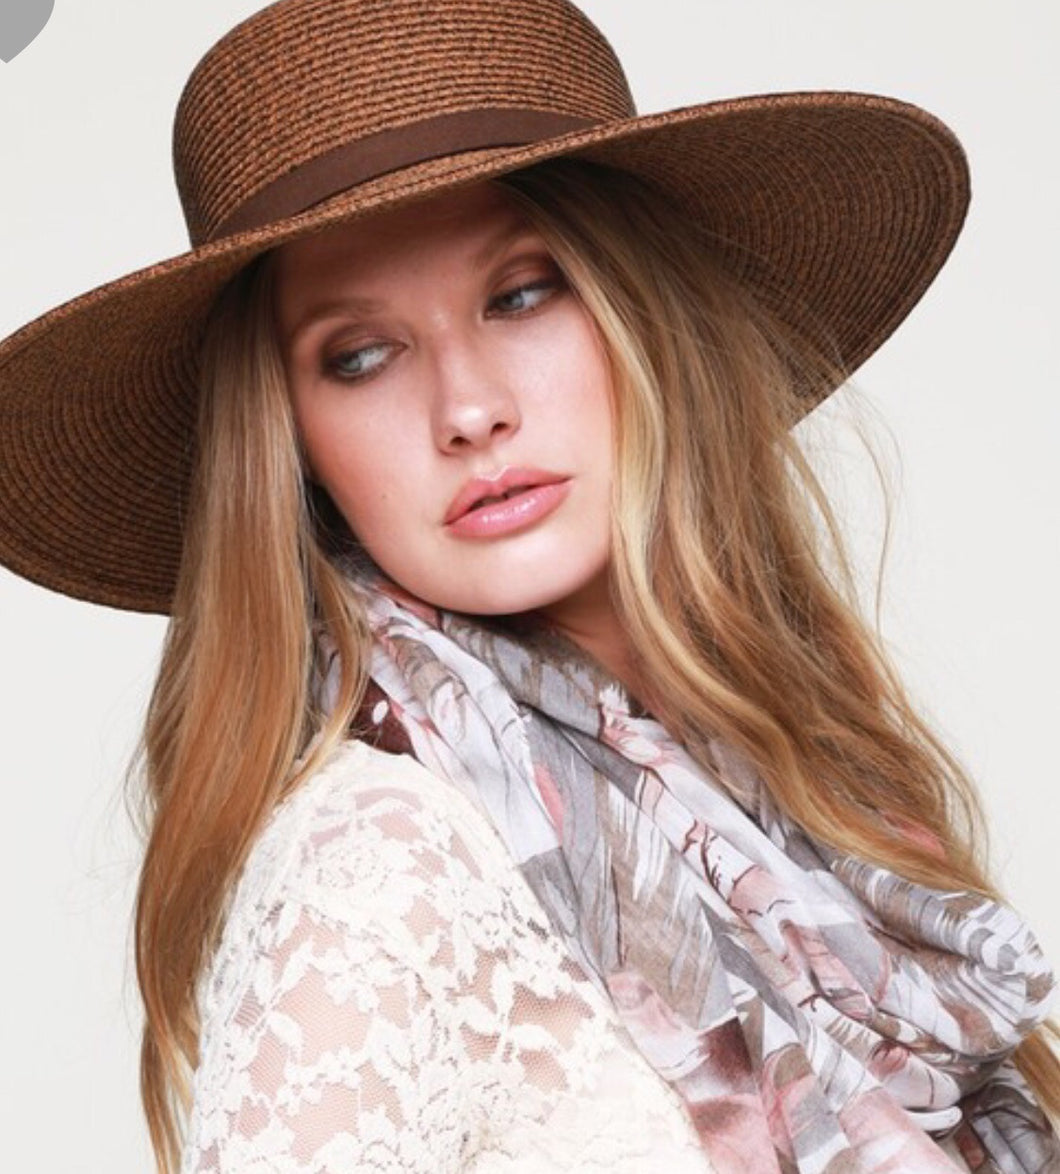 Dark natural straw hat with faux leather hatband